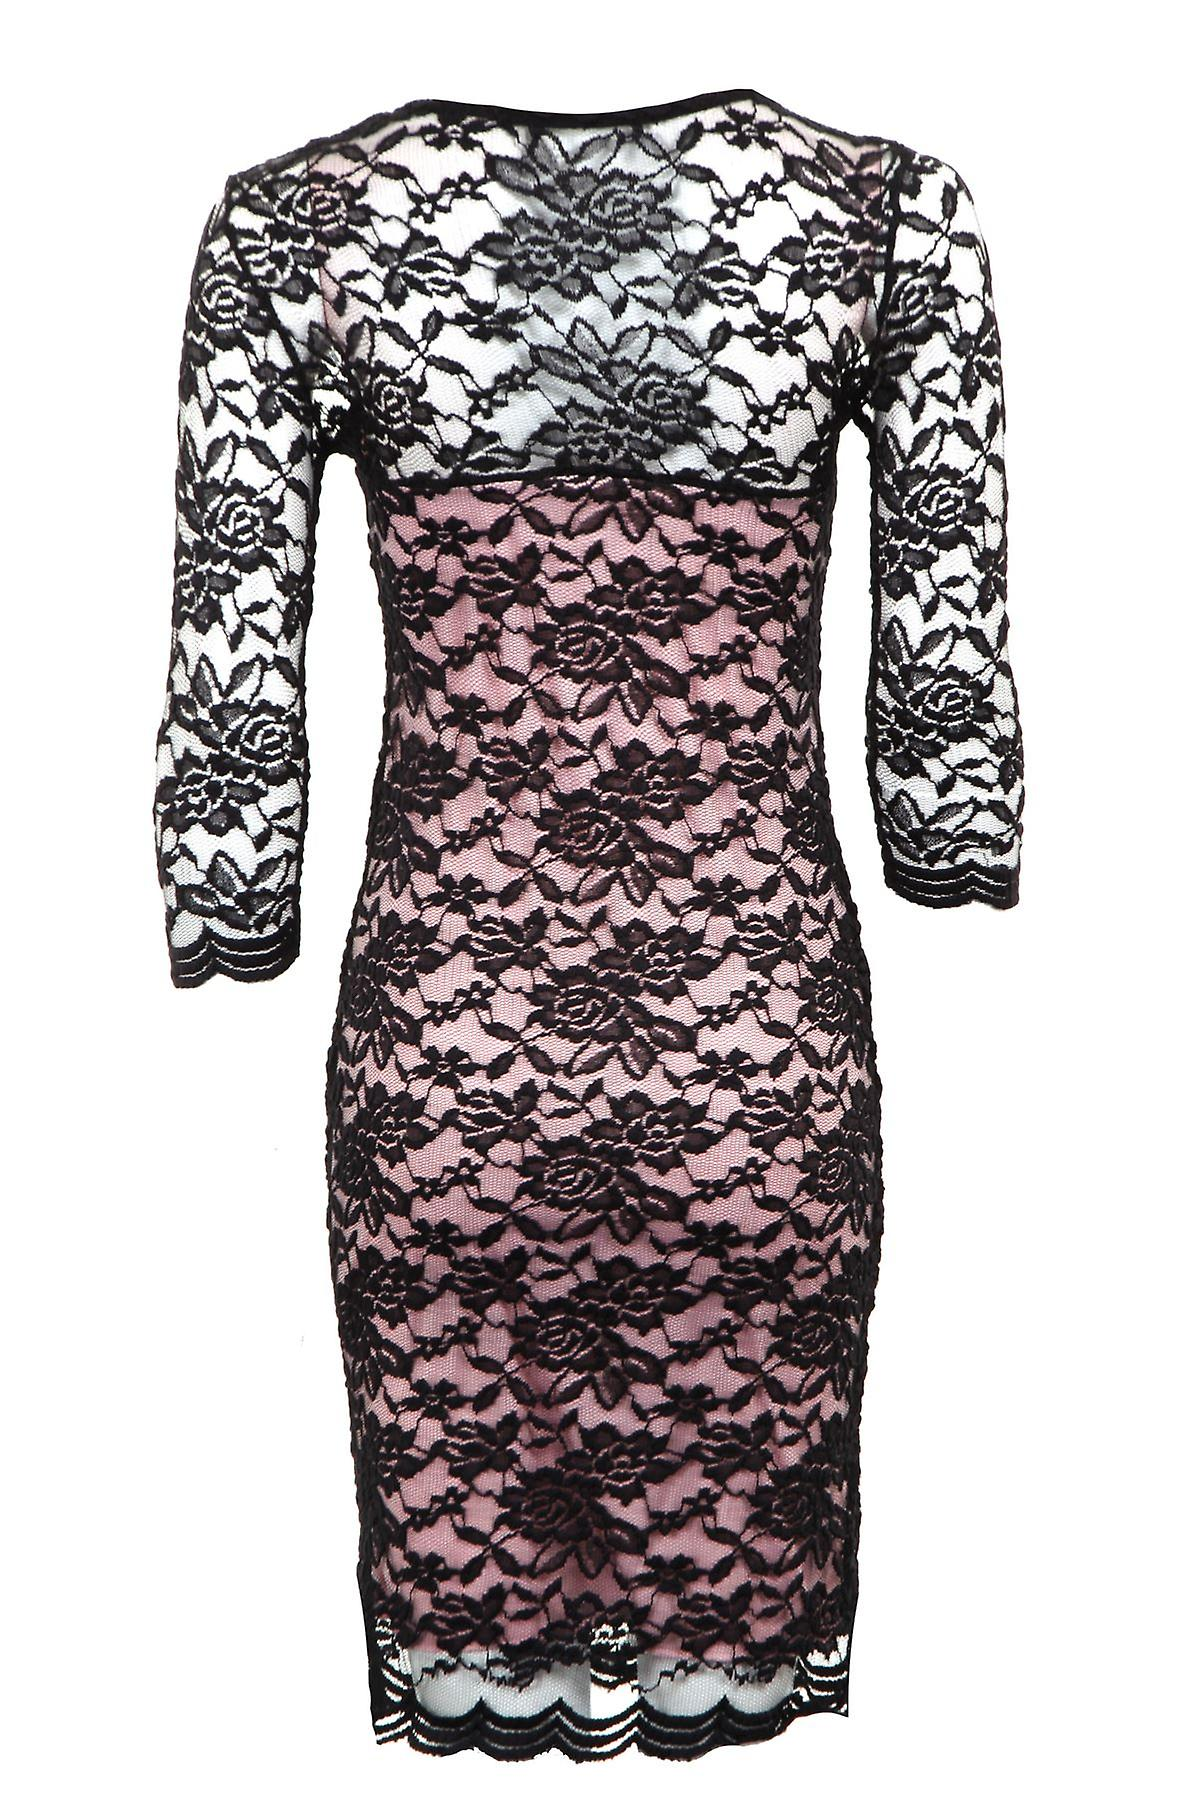 New Ladies 3/4 Sleeves Lined Floral Lace Women's Bodycon Dress